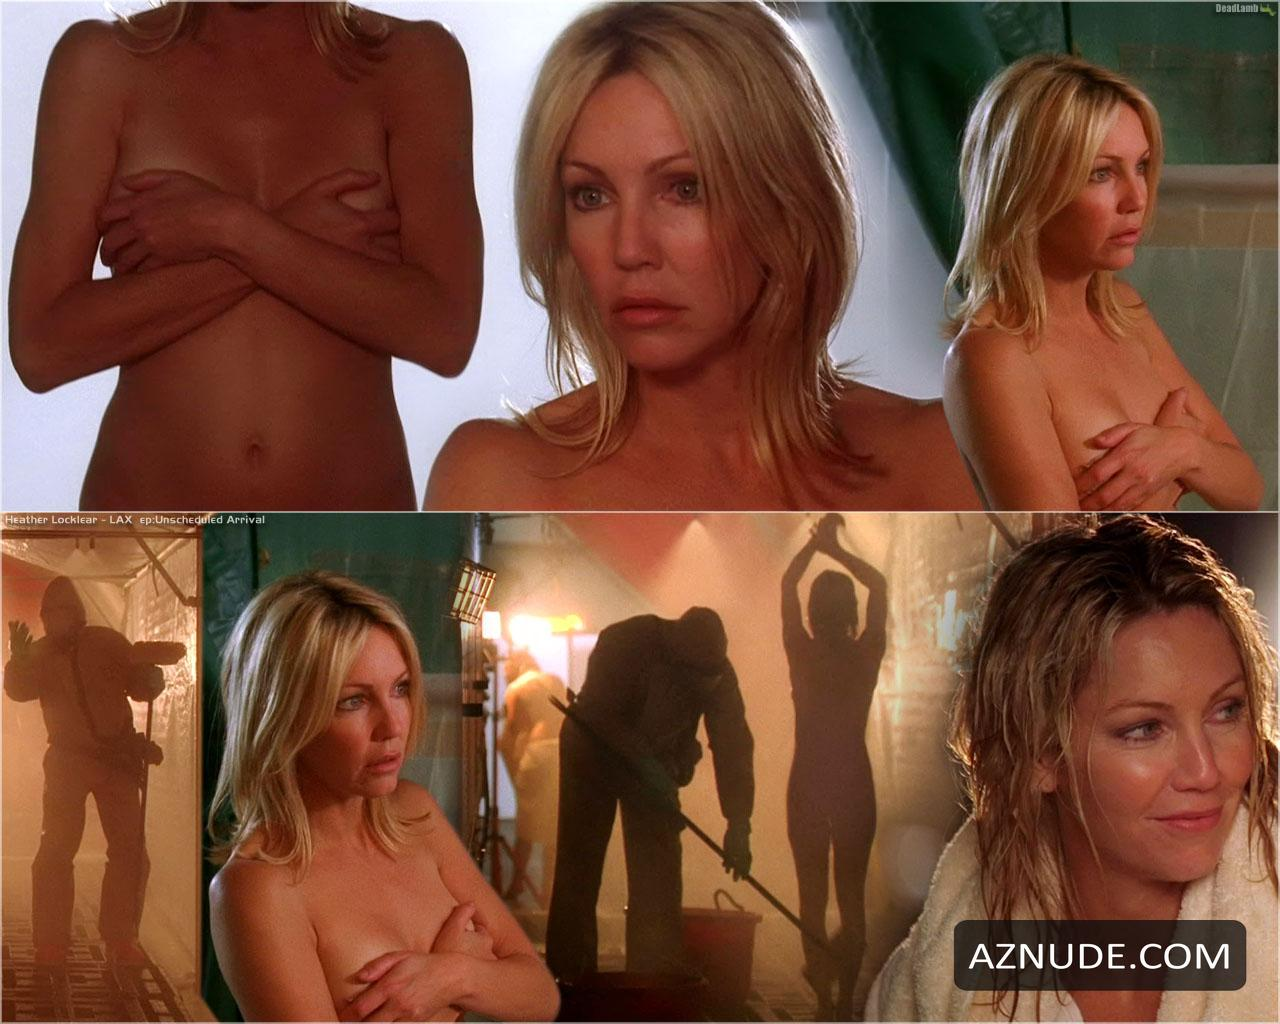 blowjob Heather locklear sex tape